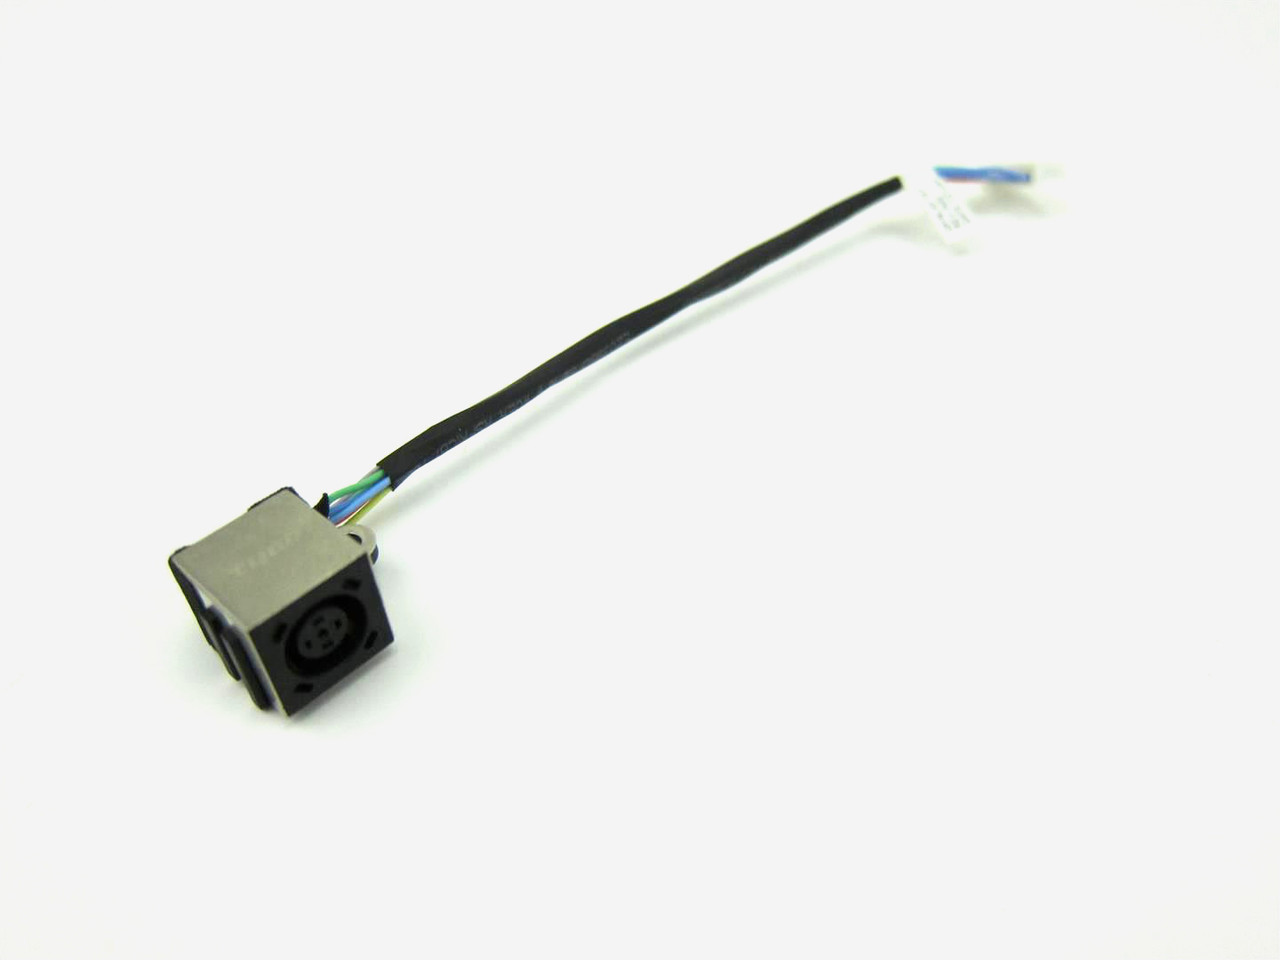 Dell XPS 15 L501X / L502X DC Power Jack & Cable - XFT6Y